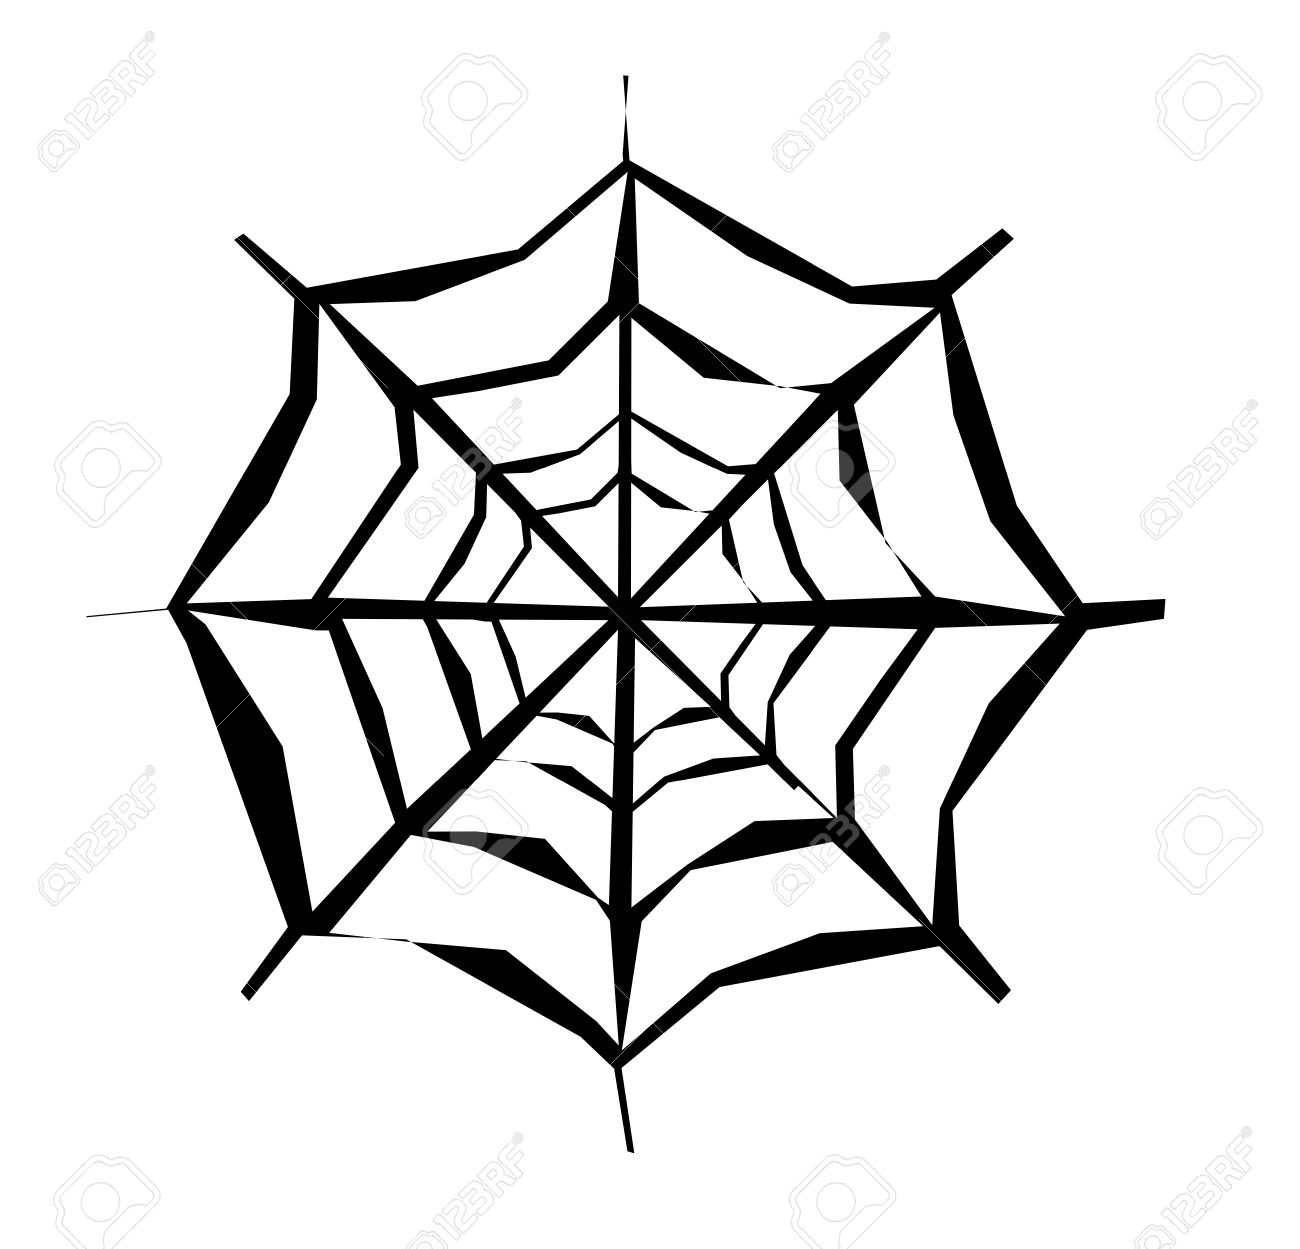 spider web design royalty free cliparts vectors and stock